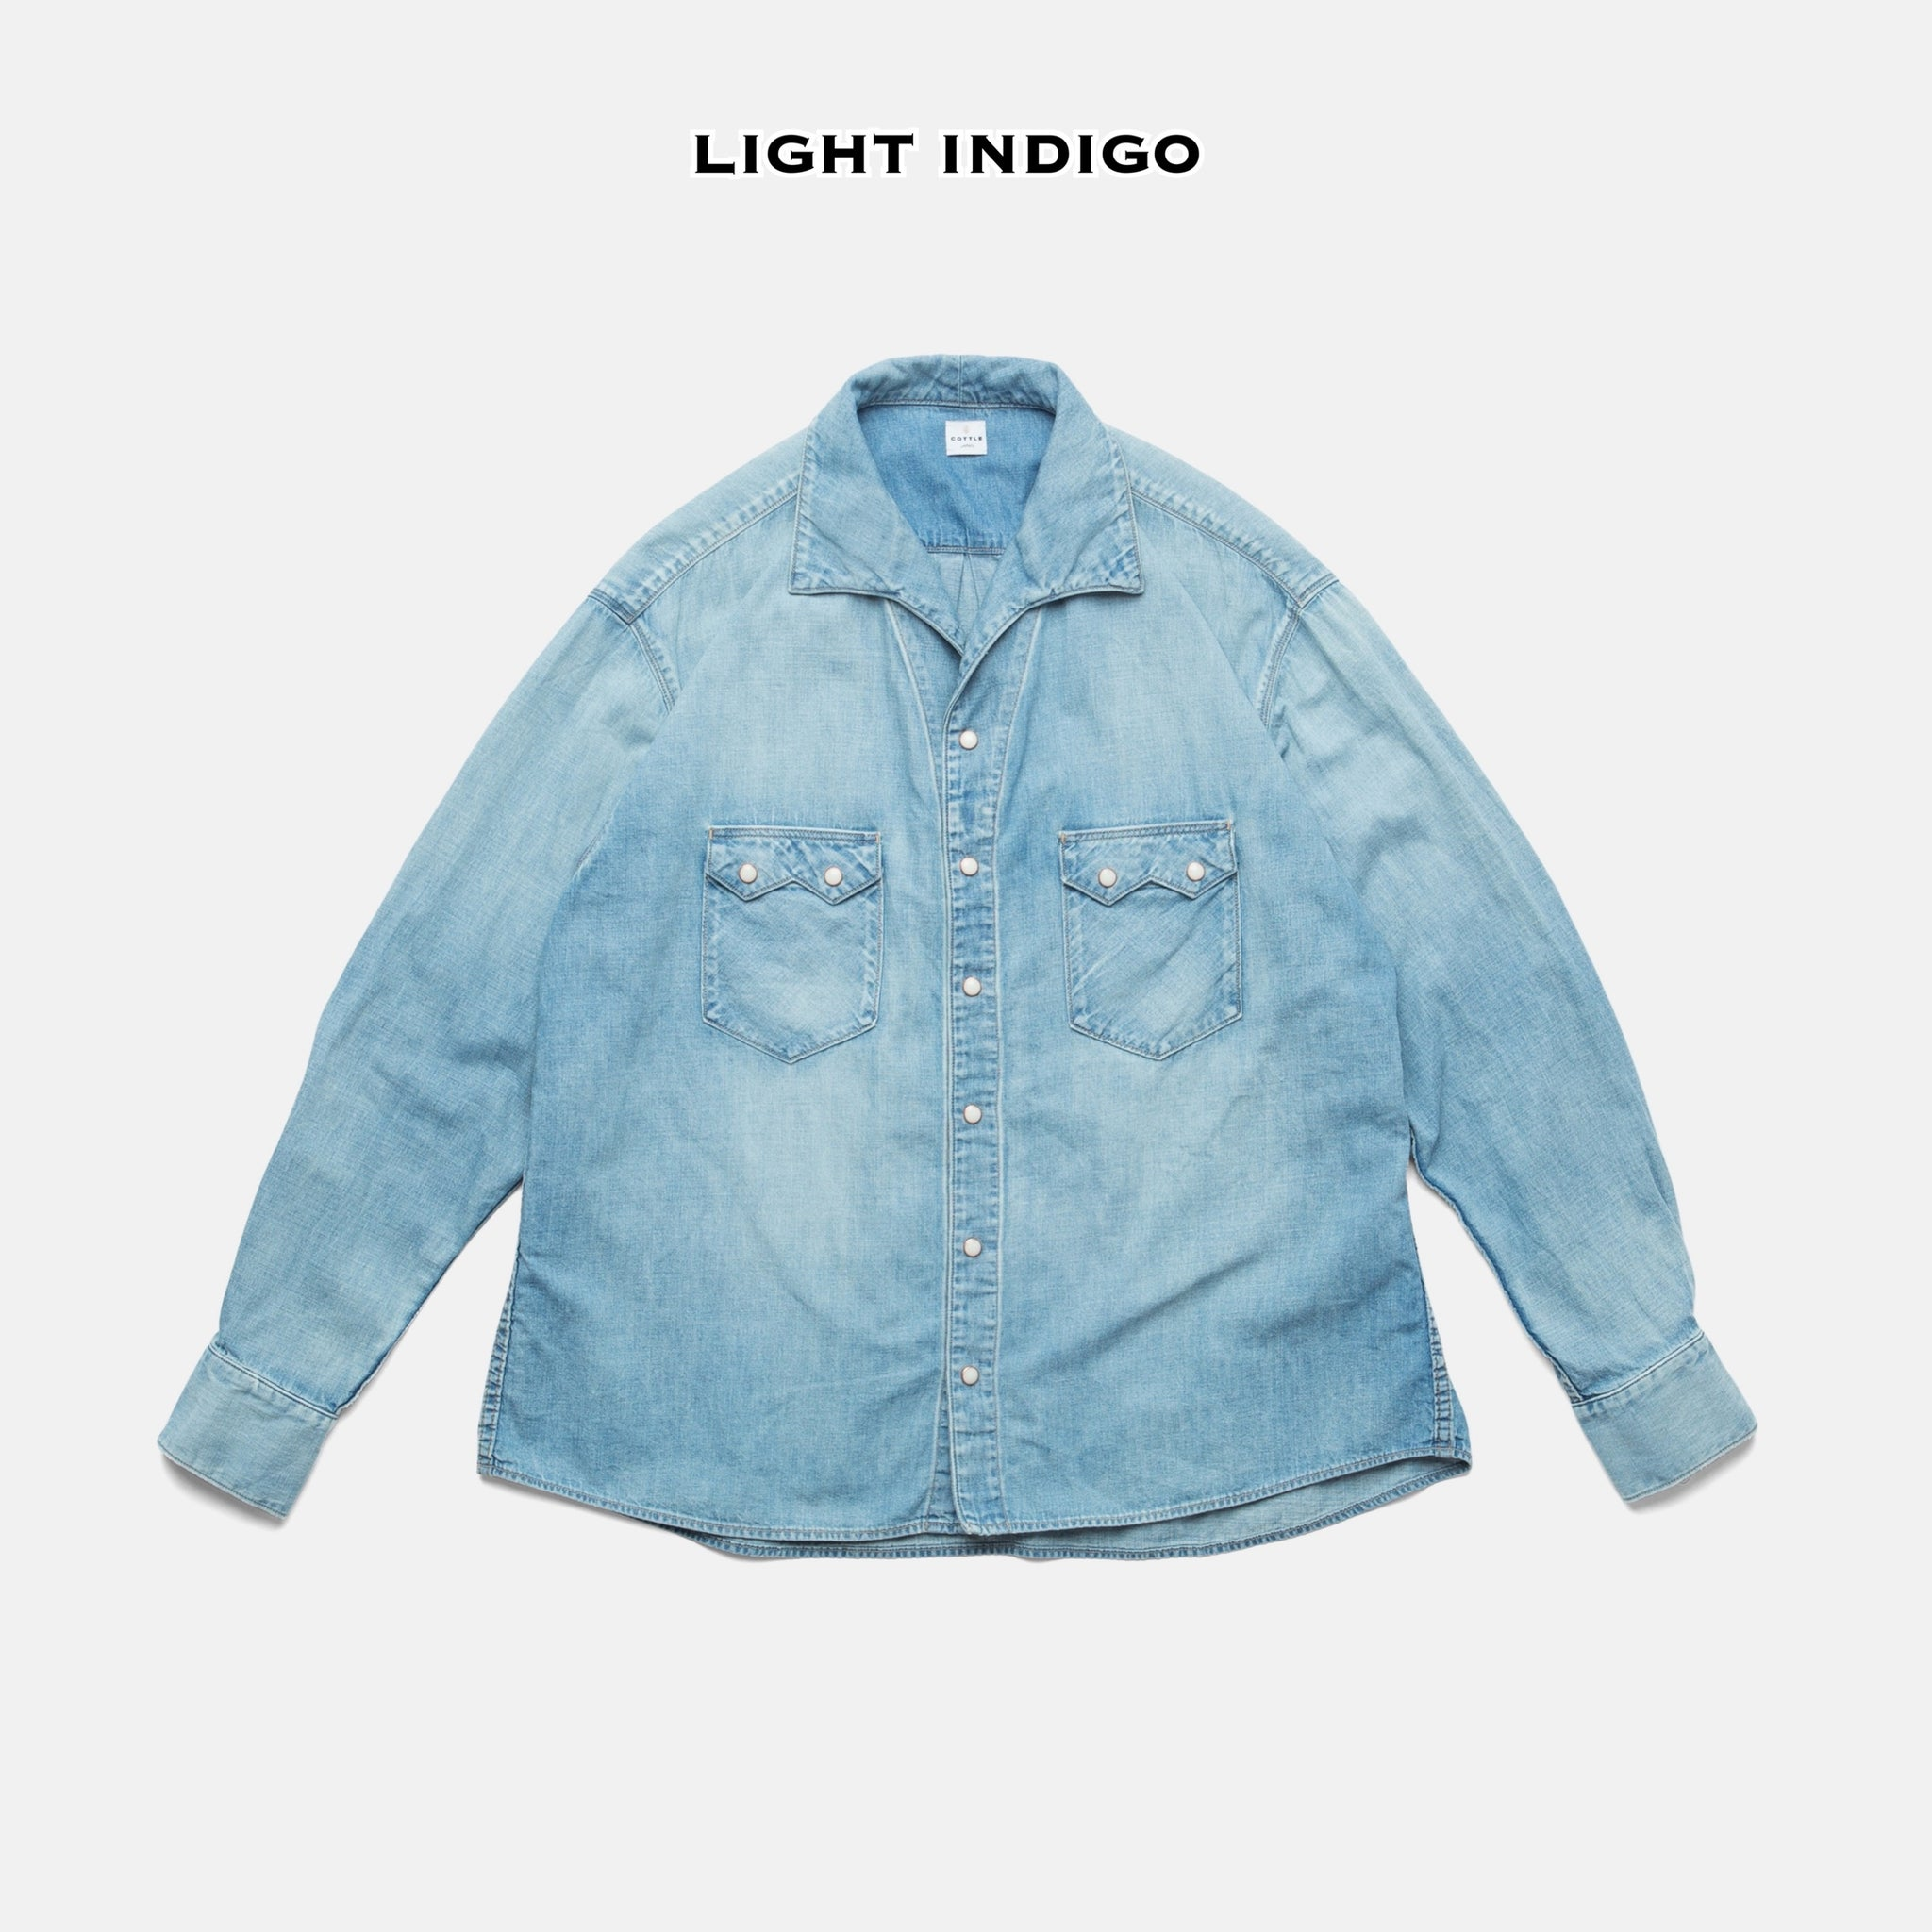 C.T.L COMFORT LINEN DENIM SHIRT - WASHED INDIGO